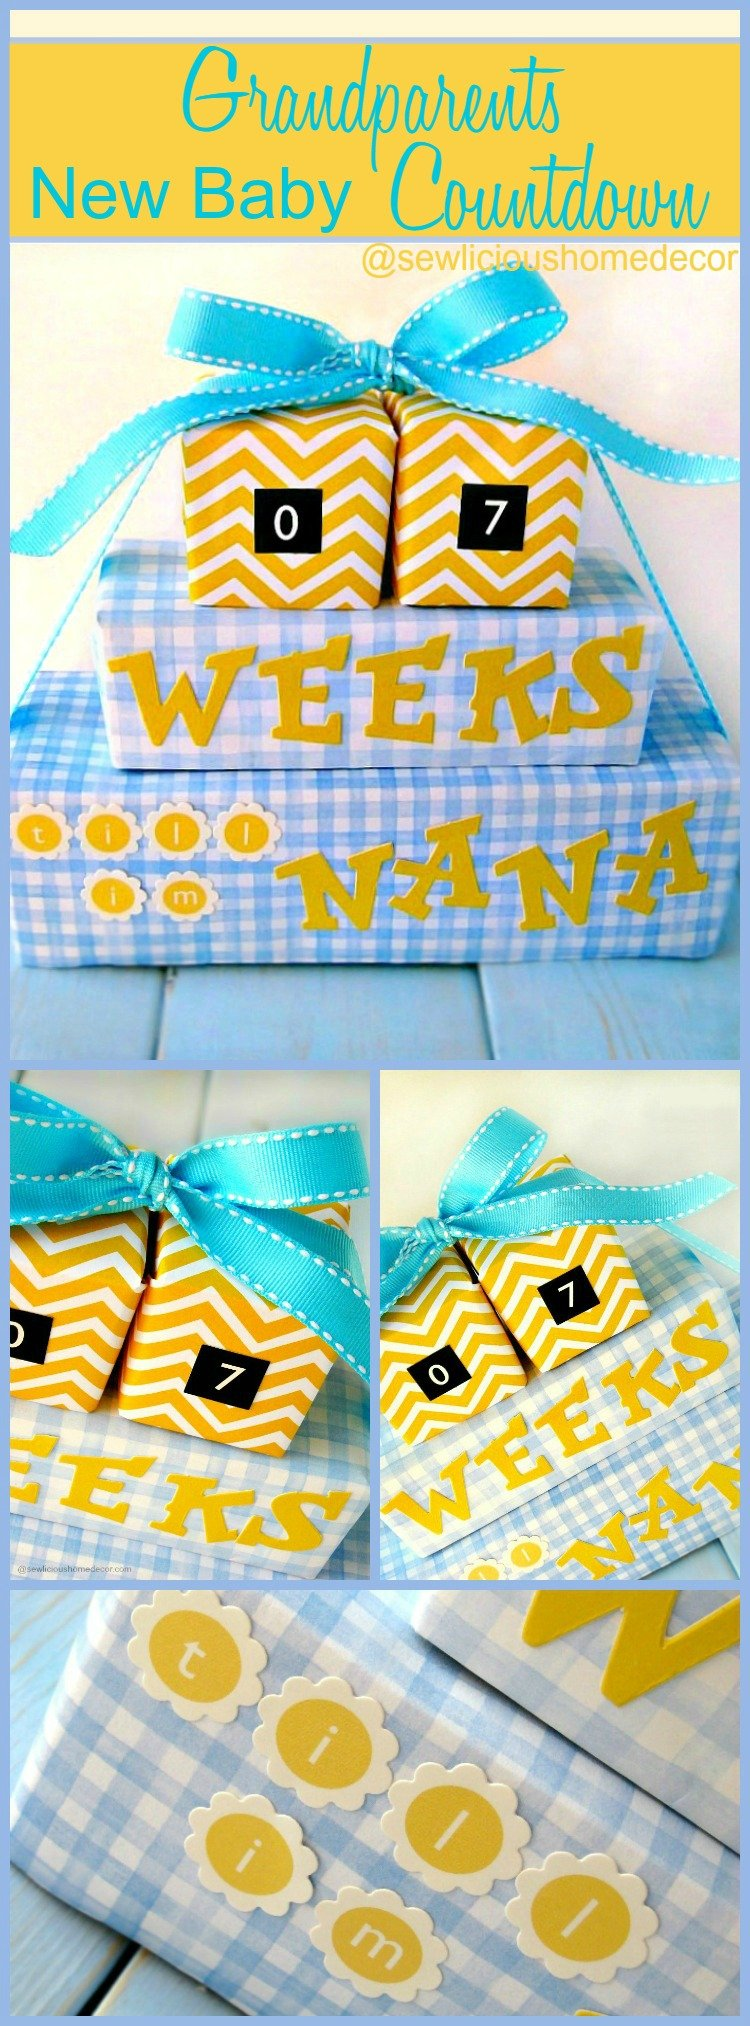 Grandparents New Baby Countdown sewlicioushomedecor.com